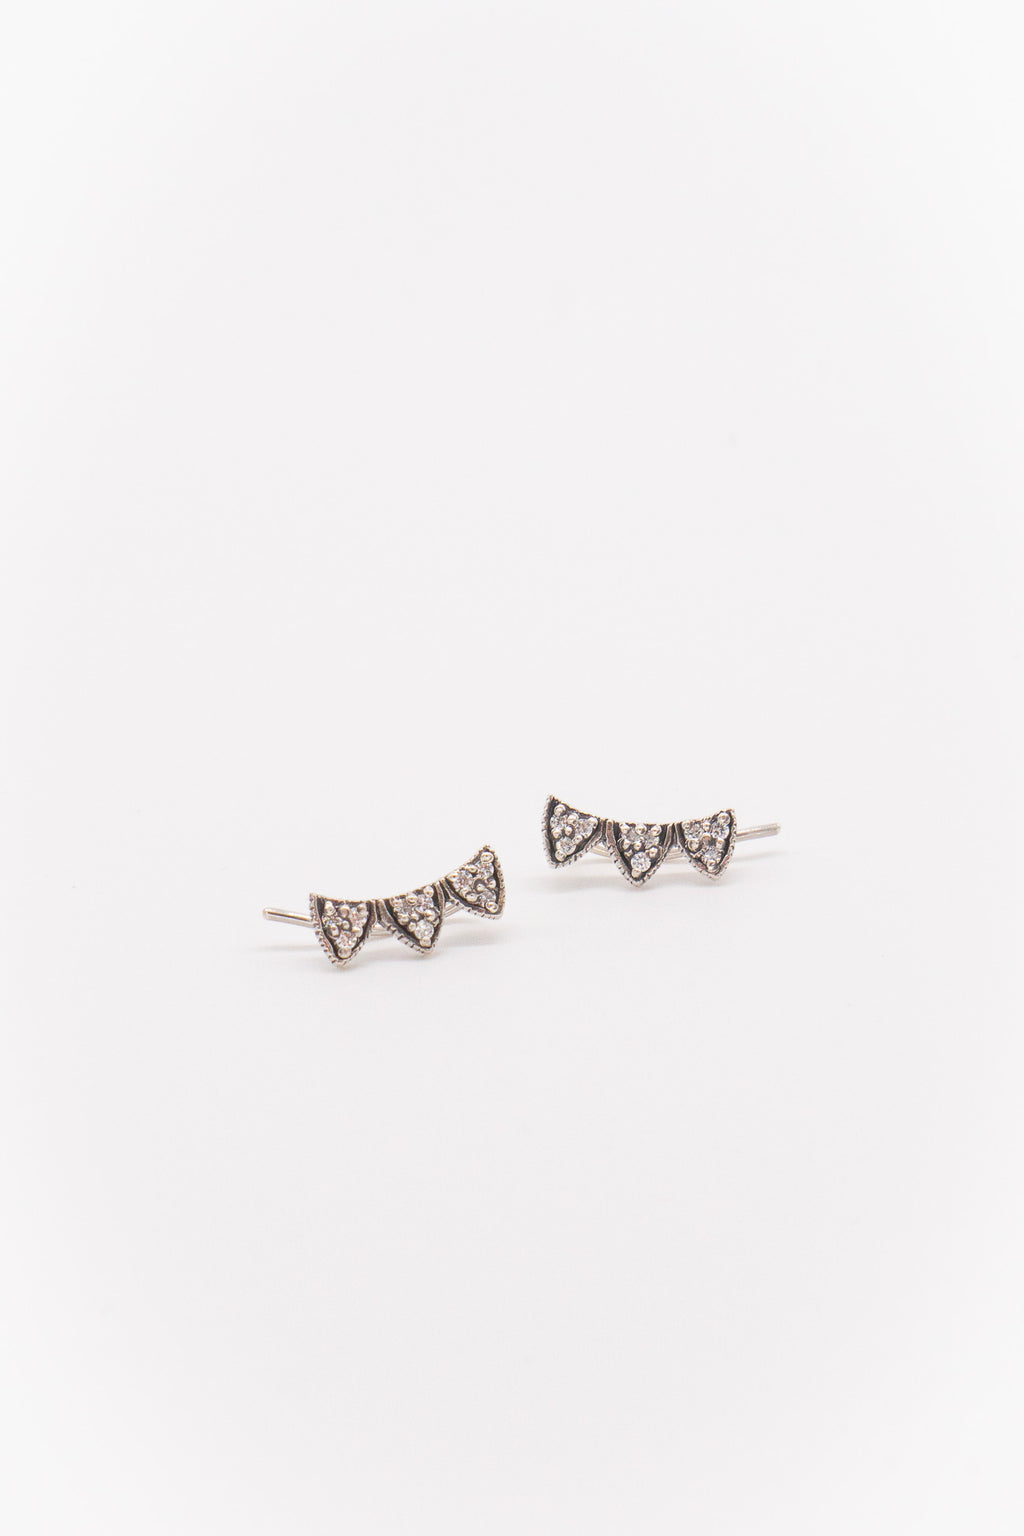 Marie Laure Chamorel Trio Triangle Earring Climbers in Antique Silver